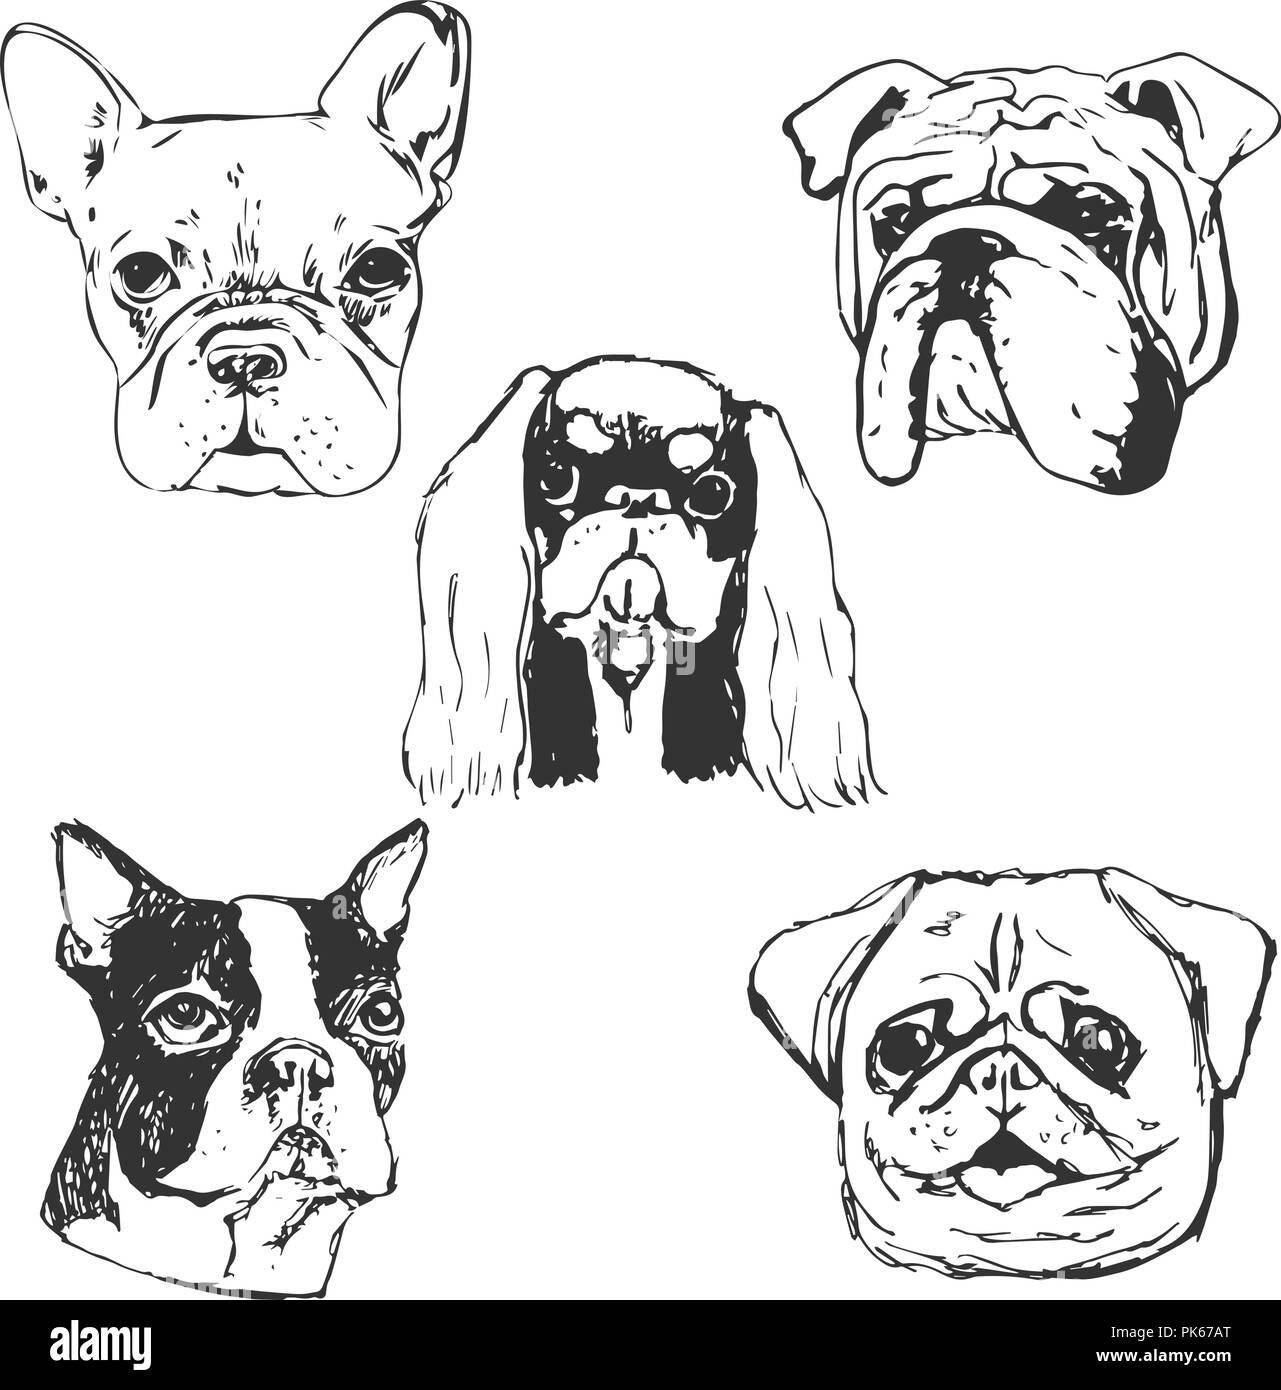 Dog Vector Illustration Hand Drawn Dog Portraitssketch Of Purebred